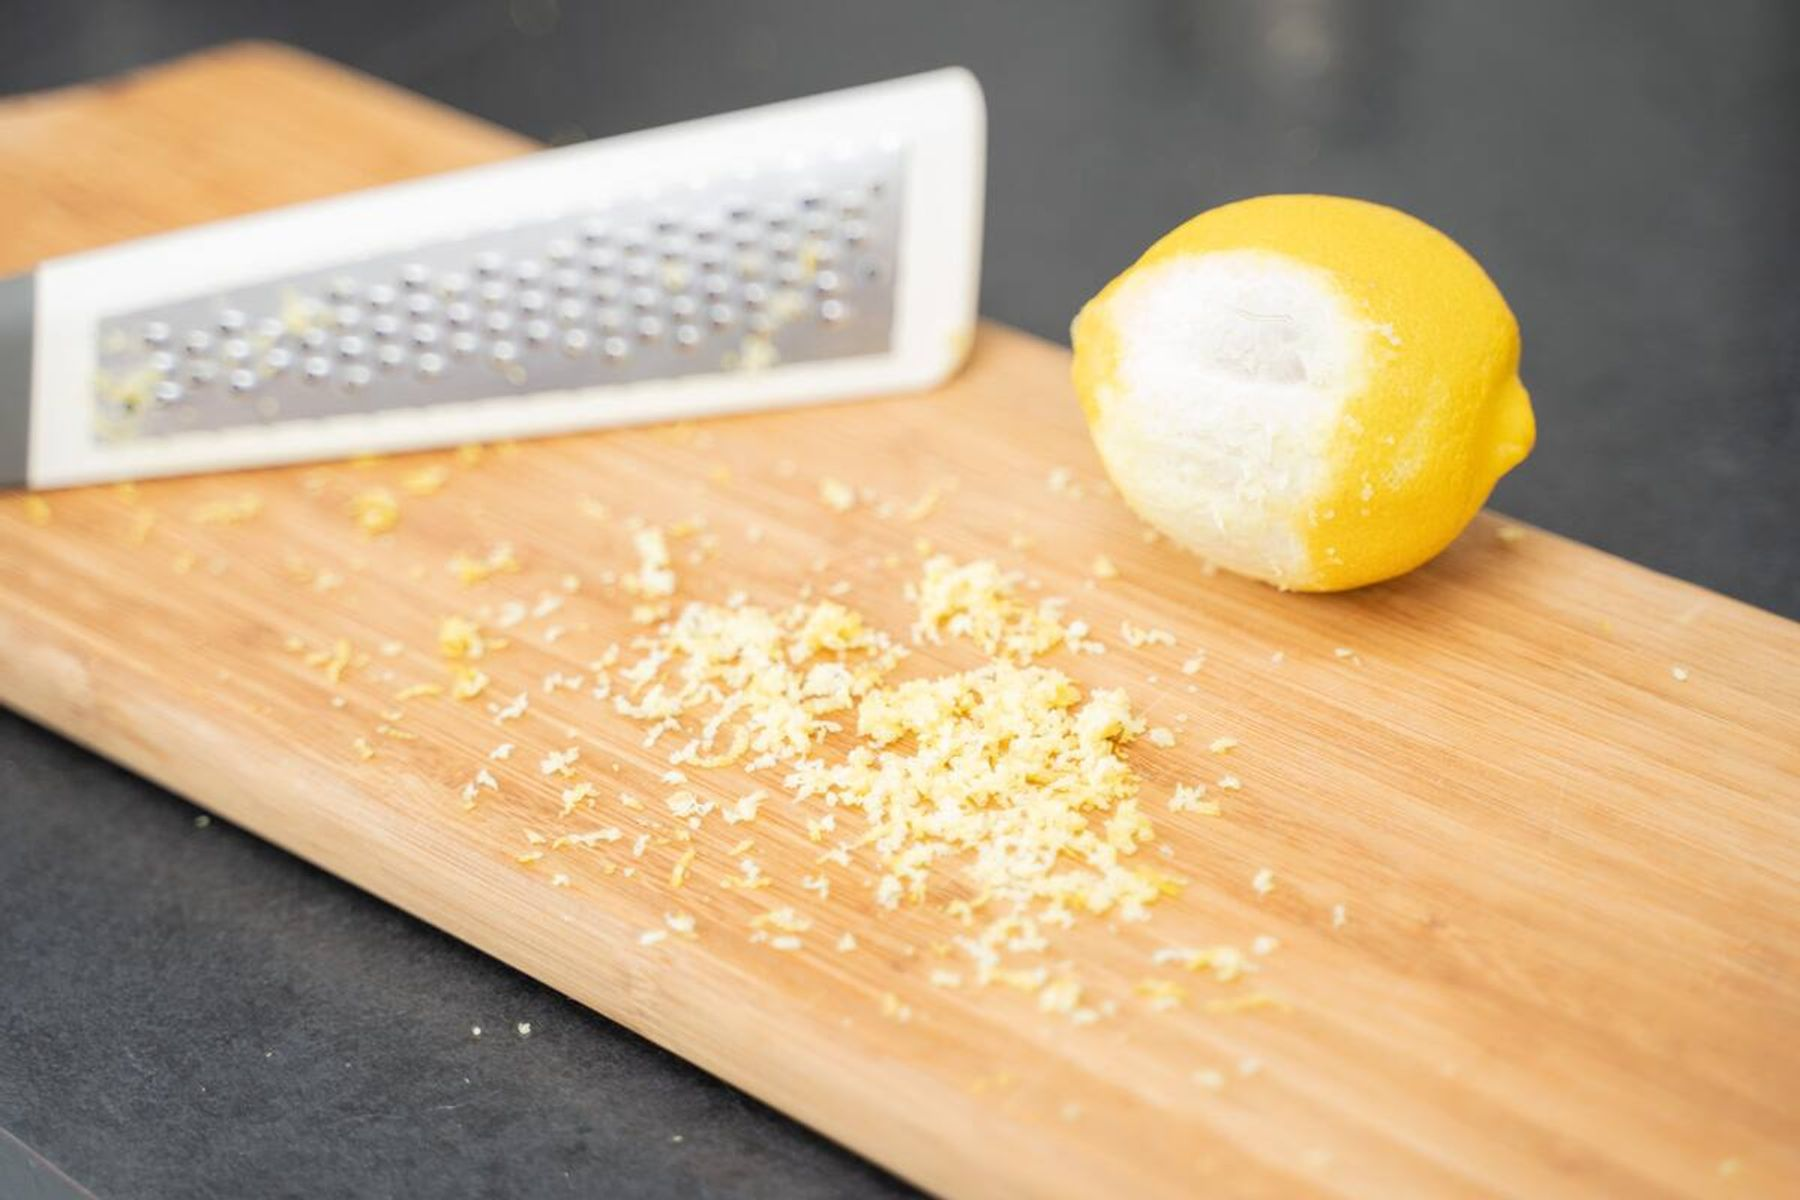 Grated lemon and grater on a chopping board